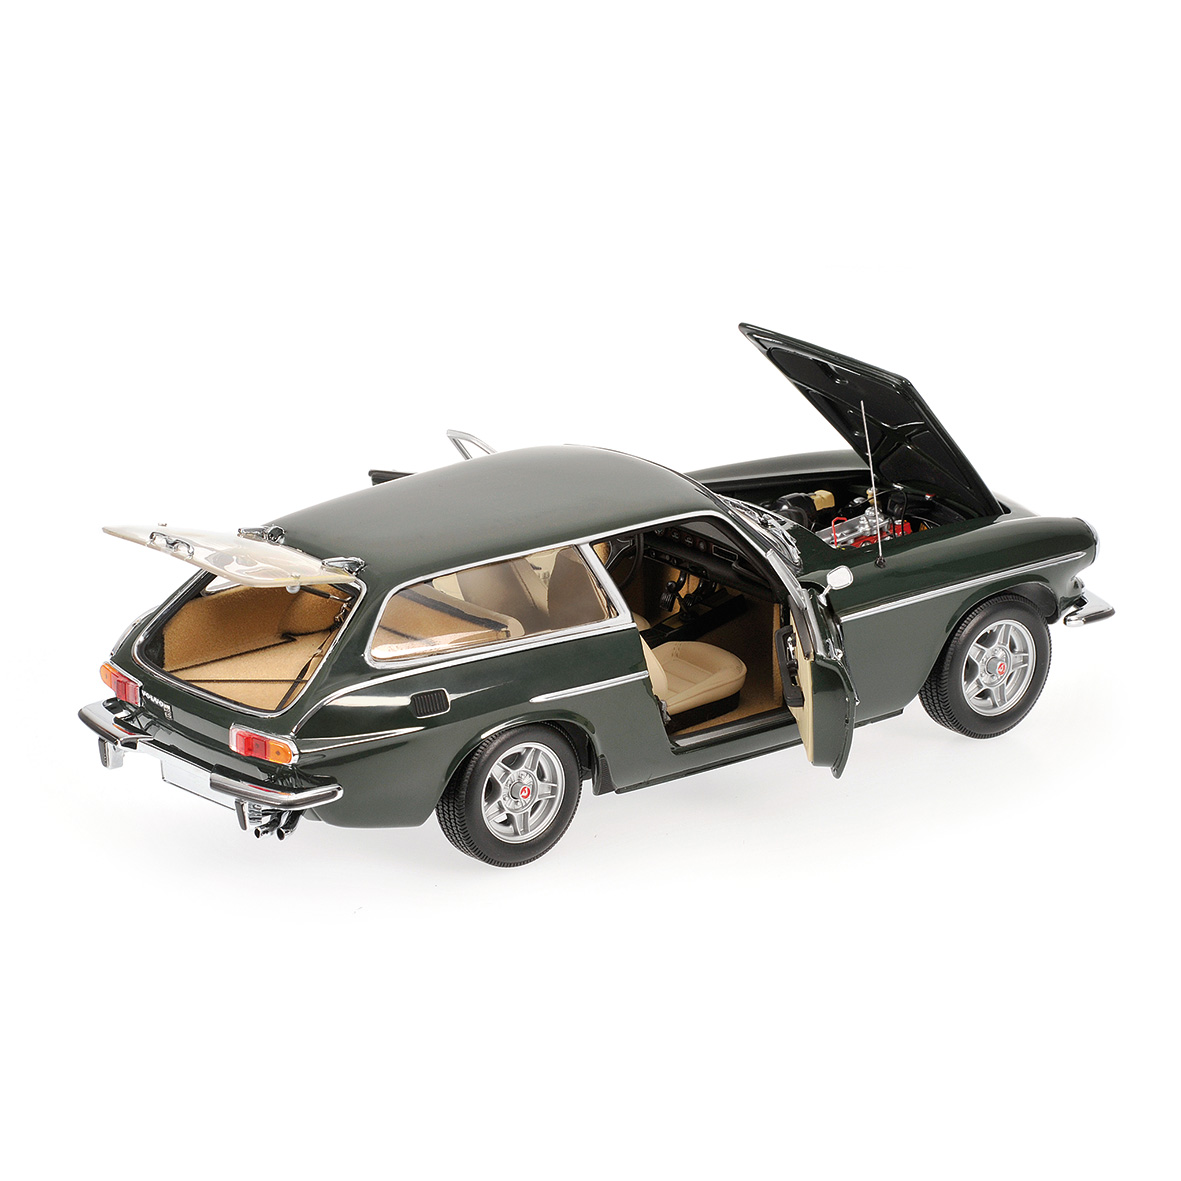 modellauto volvo p 1800 es 1971 green minichamps 1 18 bei. Black Bedroom Furniture Sets. Home Design Ideas